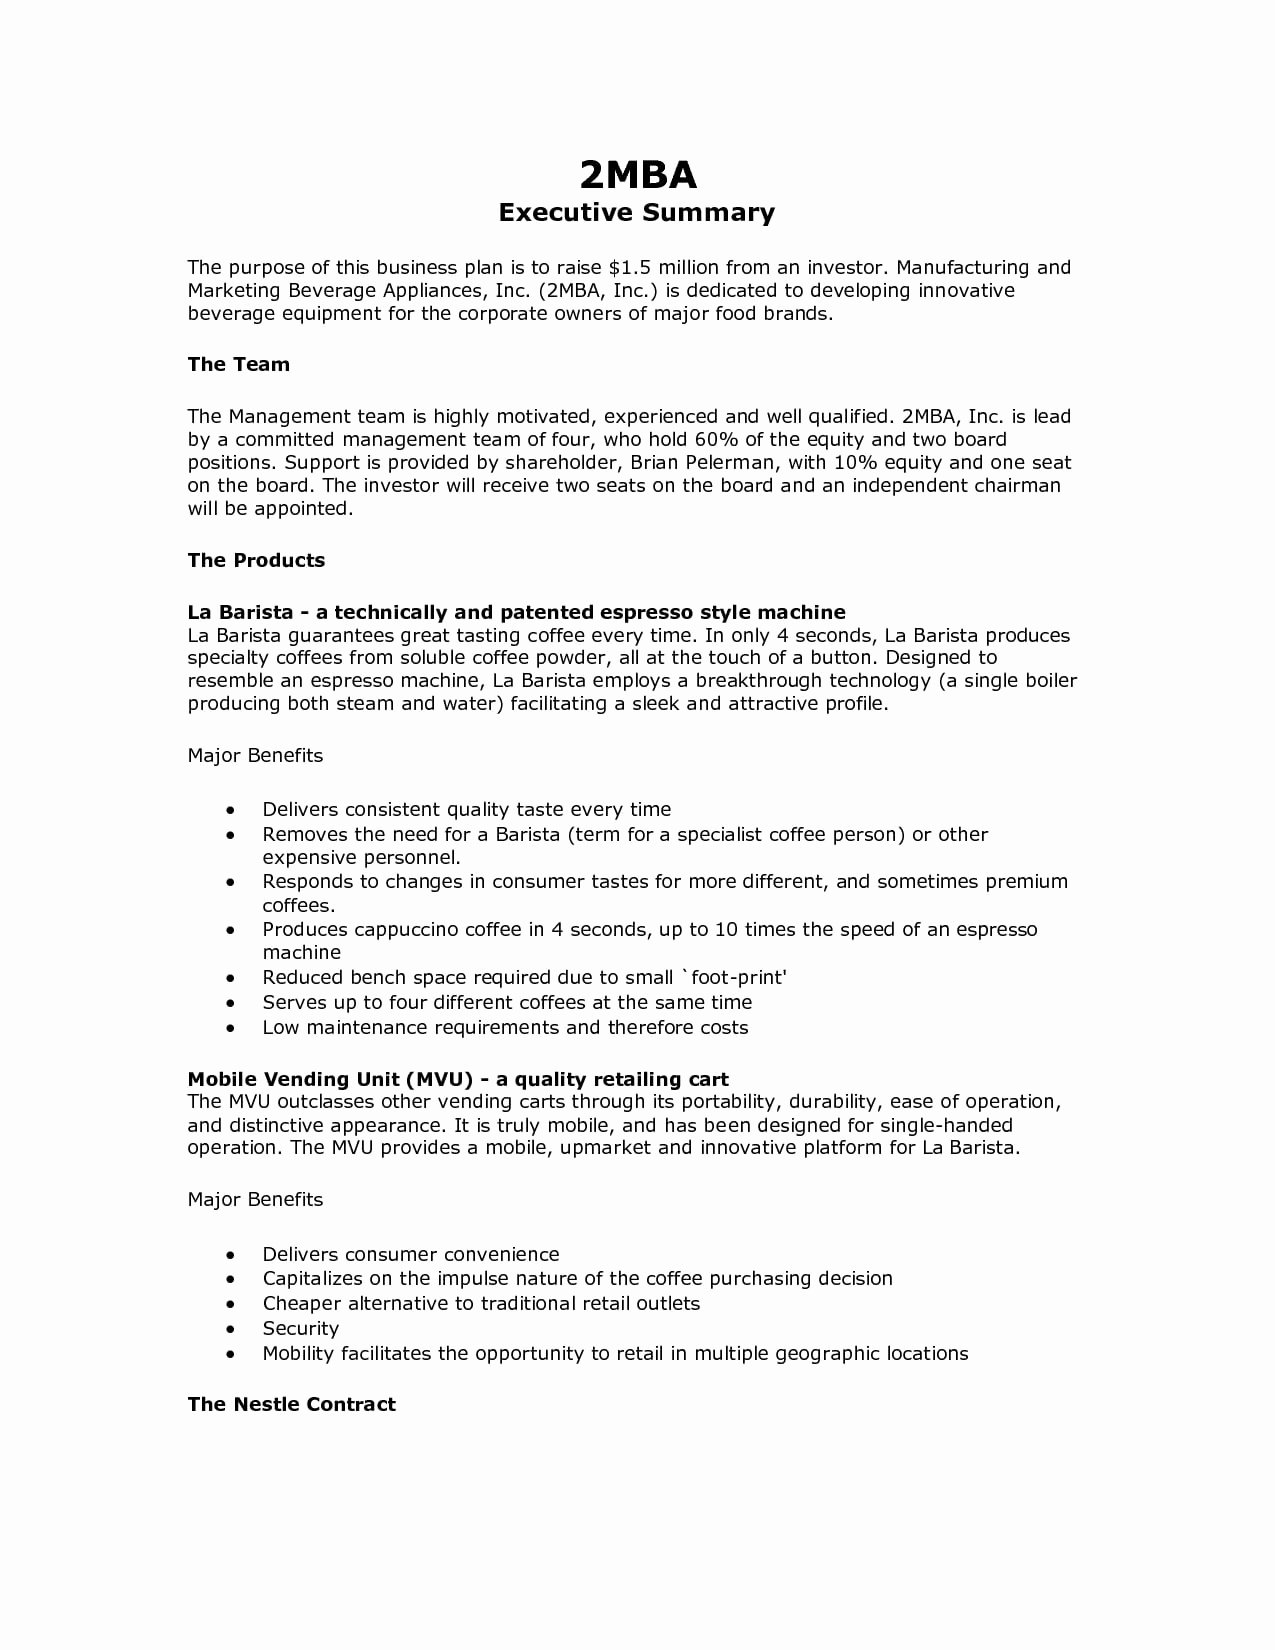 Business Summary Example Lovely 9 Executive Summary Marketing Plan Examples Pdf Word